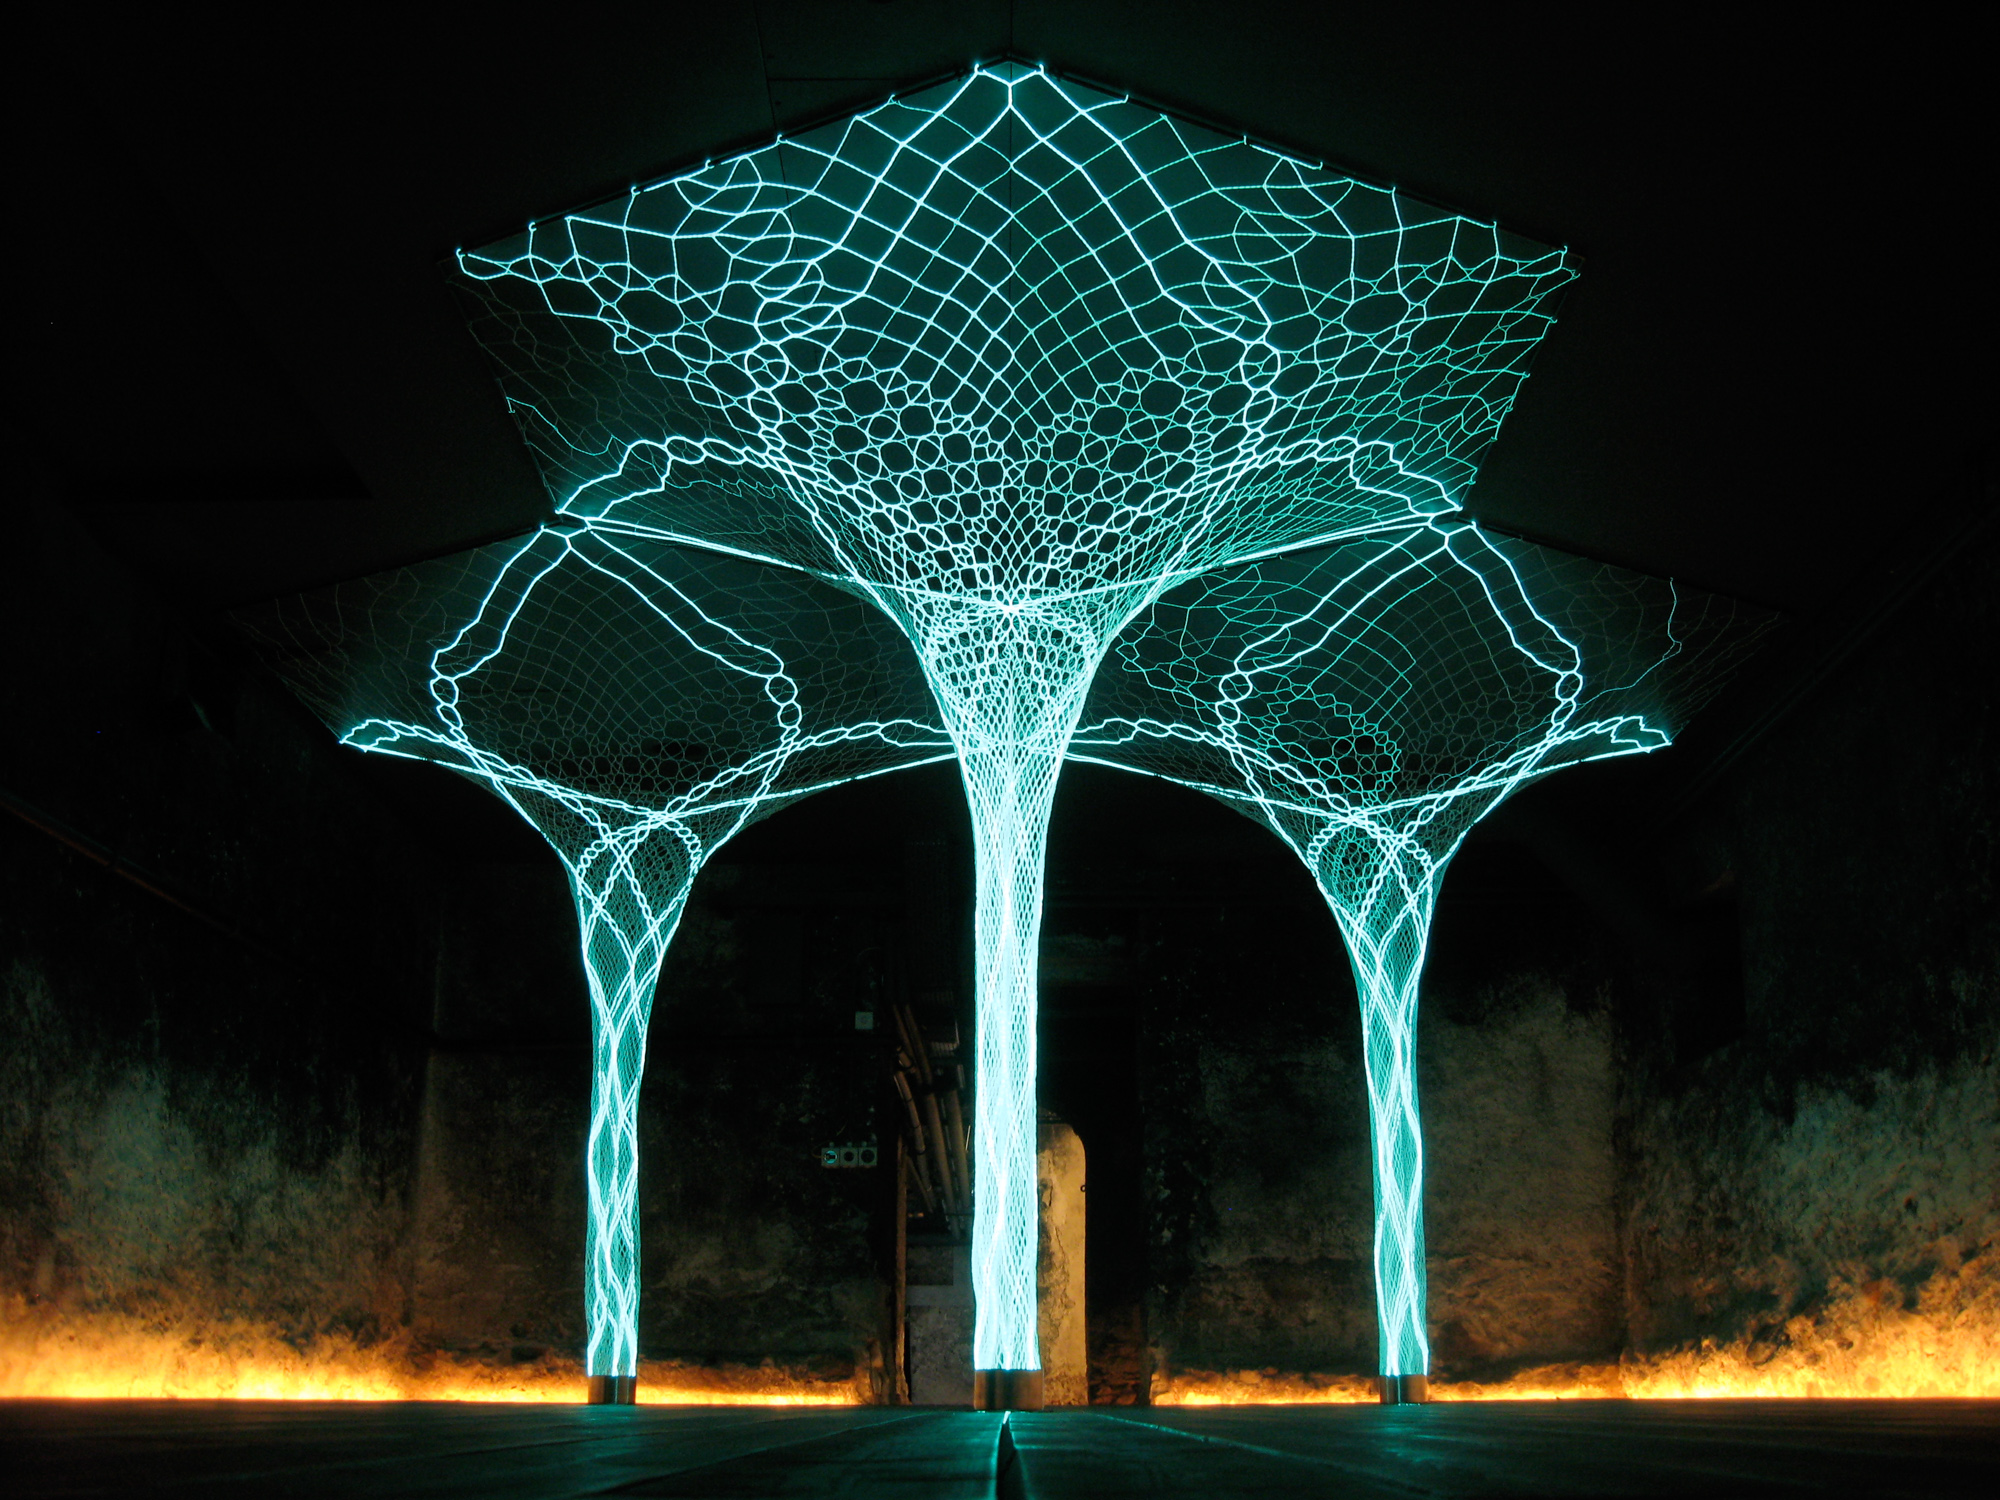 Solar Bulb Installations And Art Dedicated To The Power Of